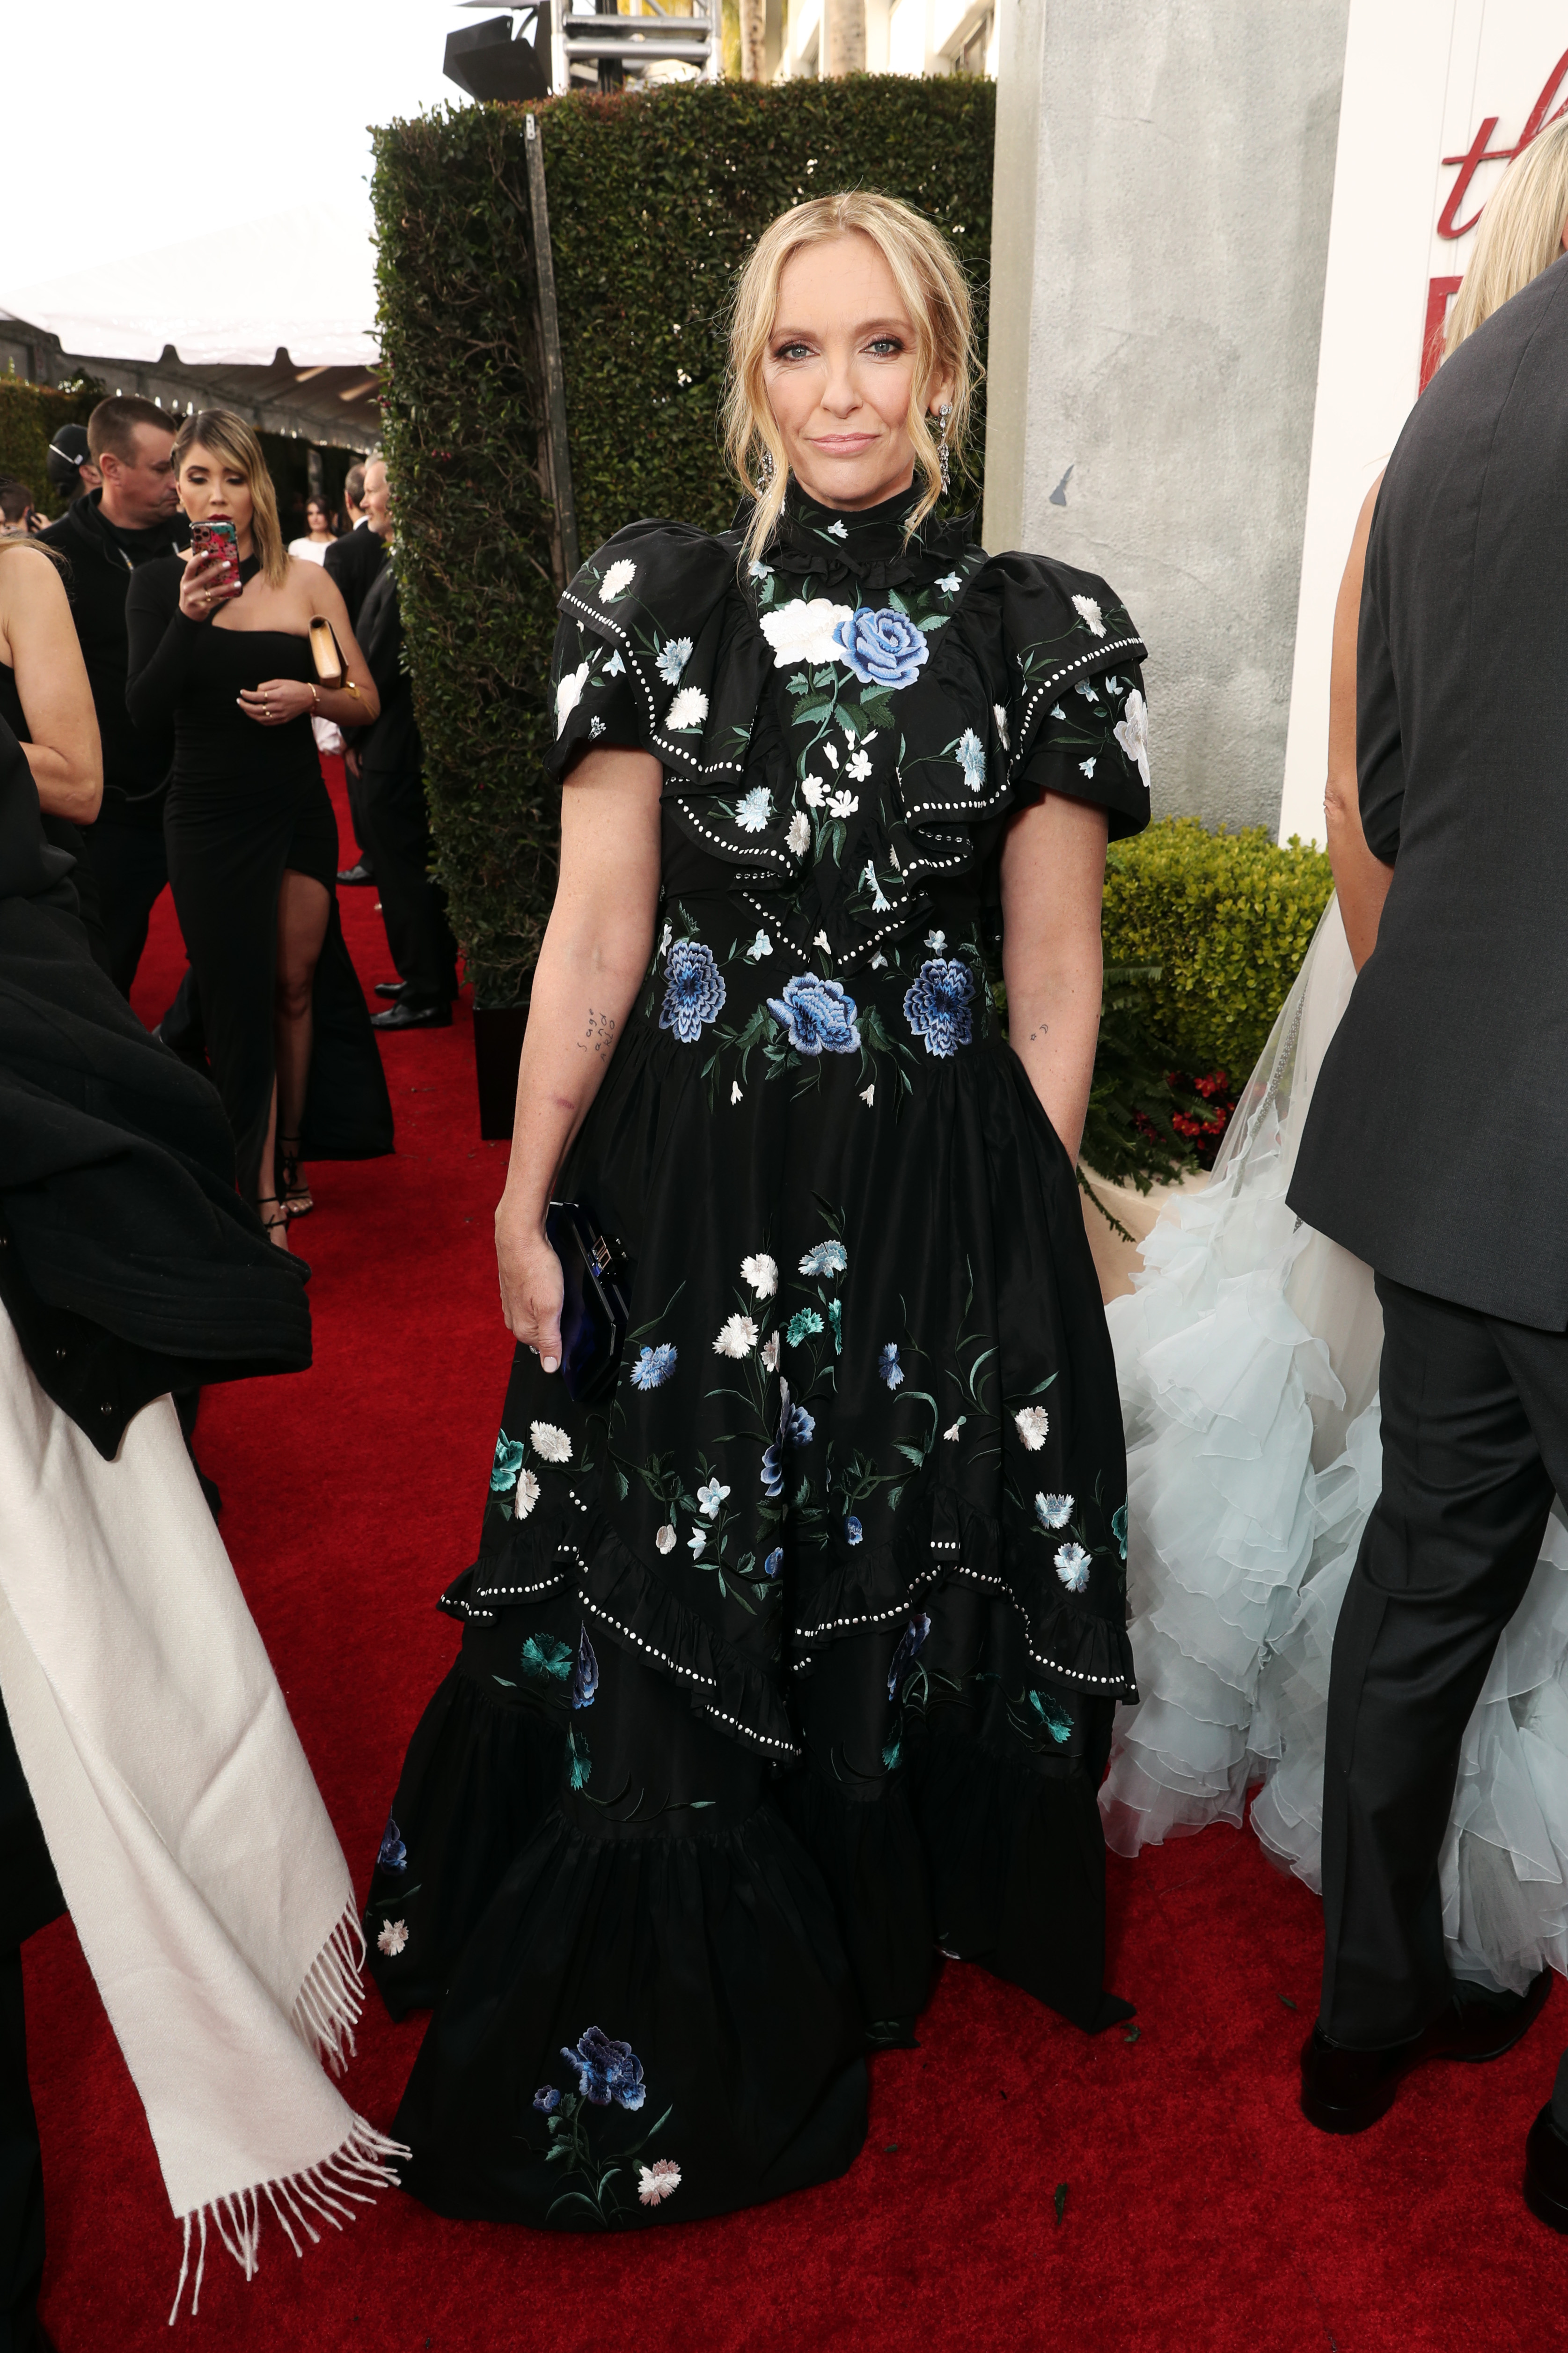 BEVERLY HILLS, CALIFORNIA - JANUARY 05: 77th ANNUAL GOLDEN GLOBE AWARDS -- Pictured: Toni Collette arrives to the 77th Annual Golden Globe Awards held at the Beverly Hilton Hotel on January 5, 2020. -- (Photo by: Todd Williamson/NBC/NBCU Photo Bank via Getty Images)